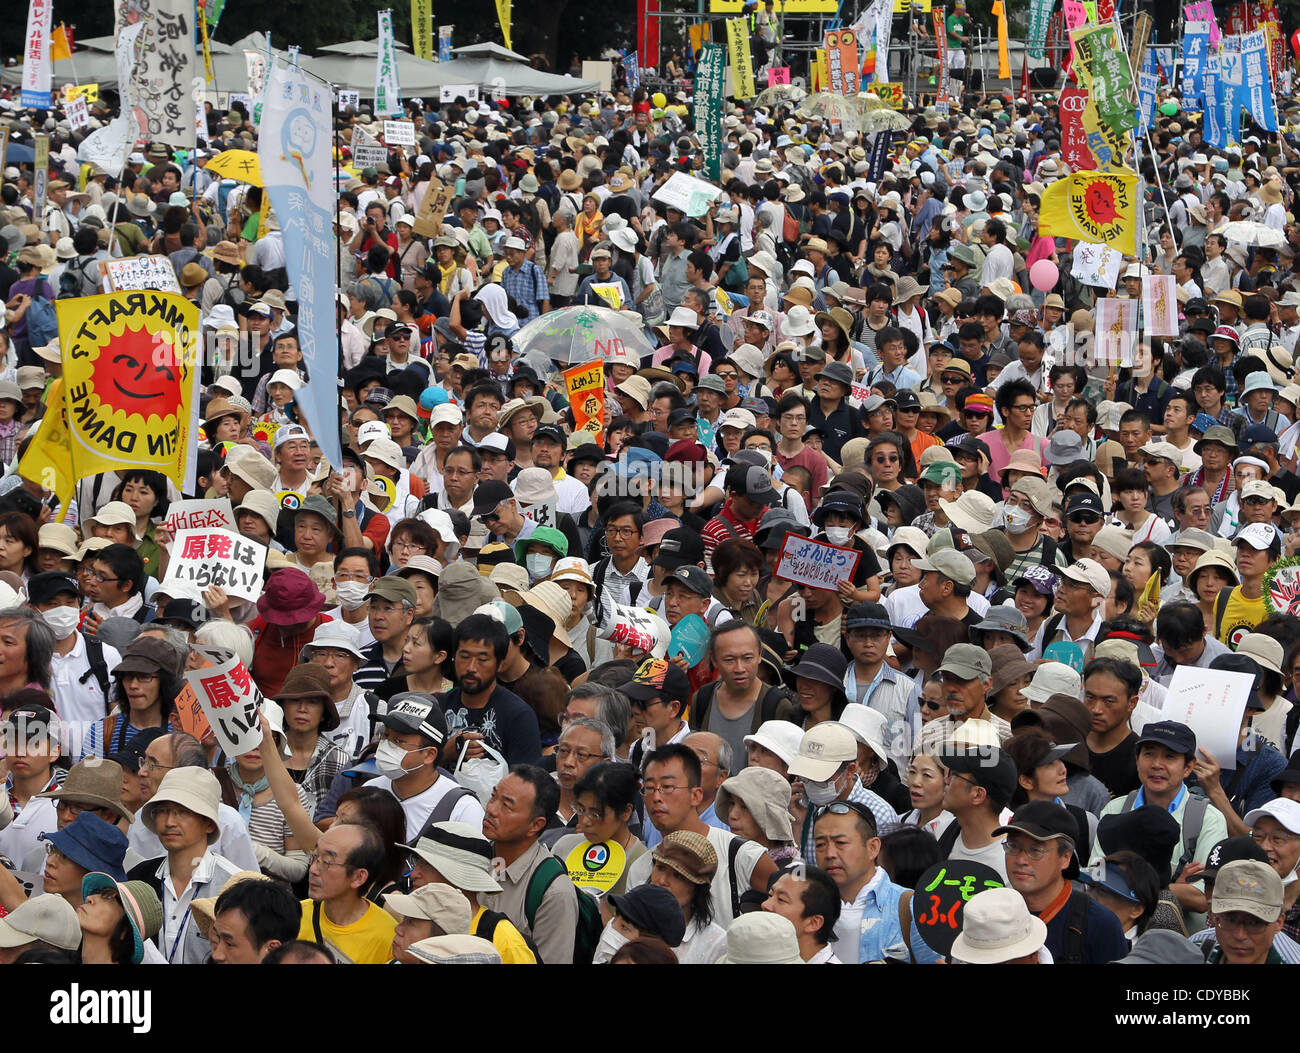 Sept. 19, 2011 - Tokyo, Japan - Thousands of anti-nuclear power people protest during NO NUKES MORE HEARTS 9.19 - Stock Image